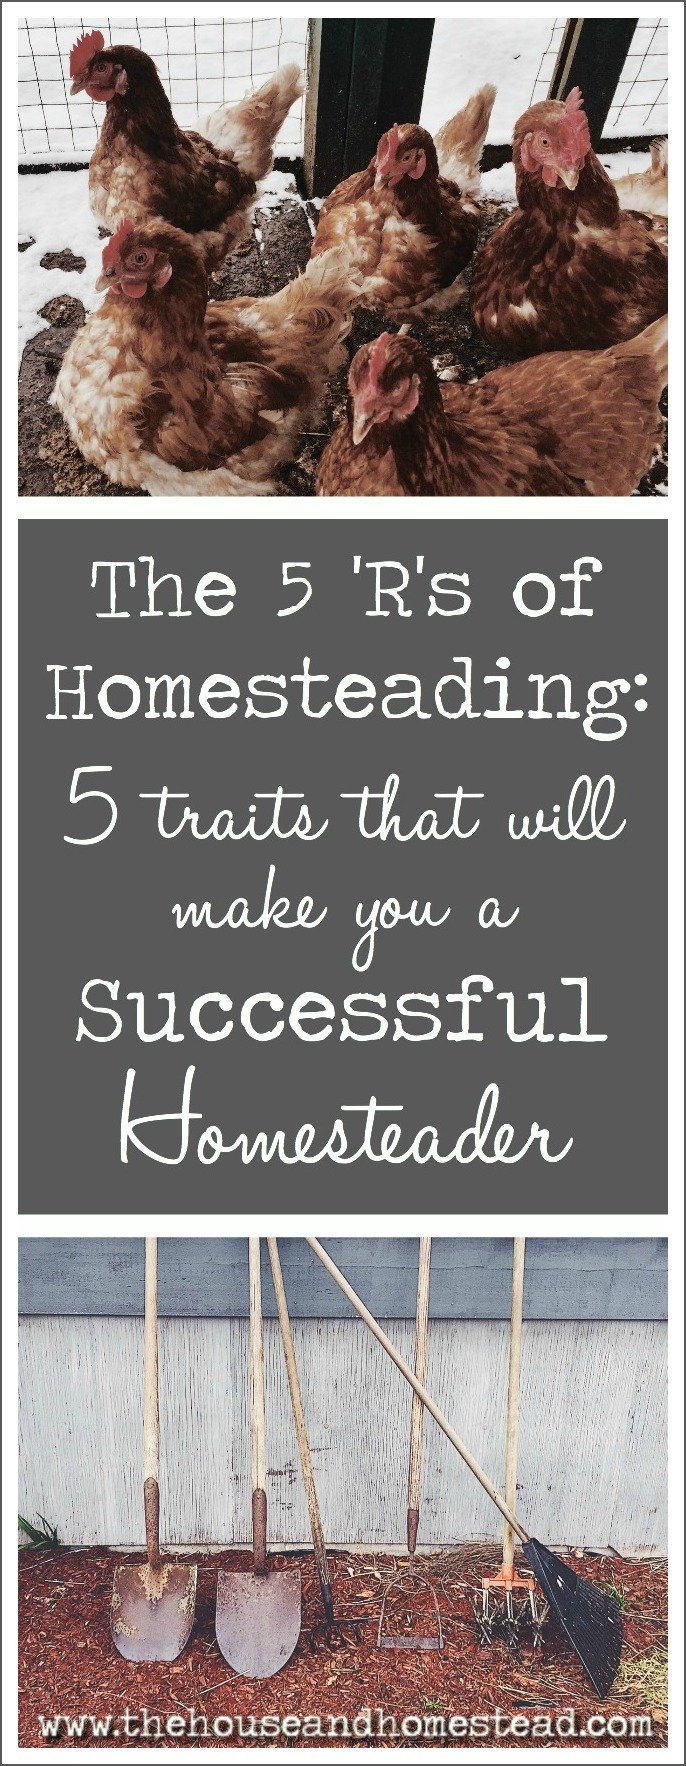 Homesteading skills are important, but attitude is everything. Learn the five traits that make a successful homesteader. How many do you already have up your sleeve?